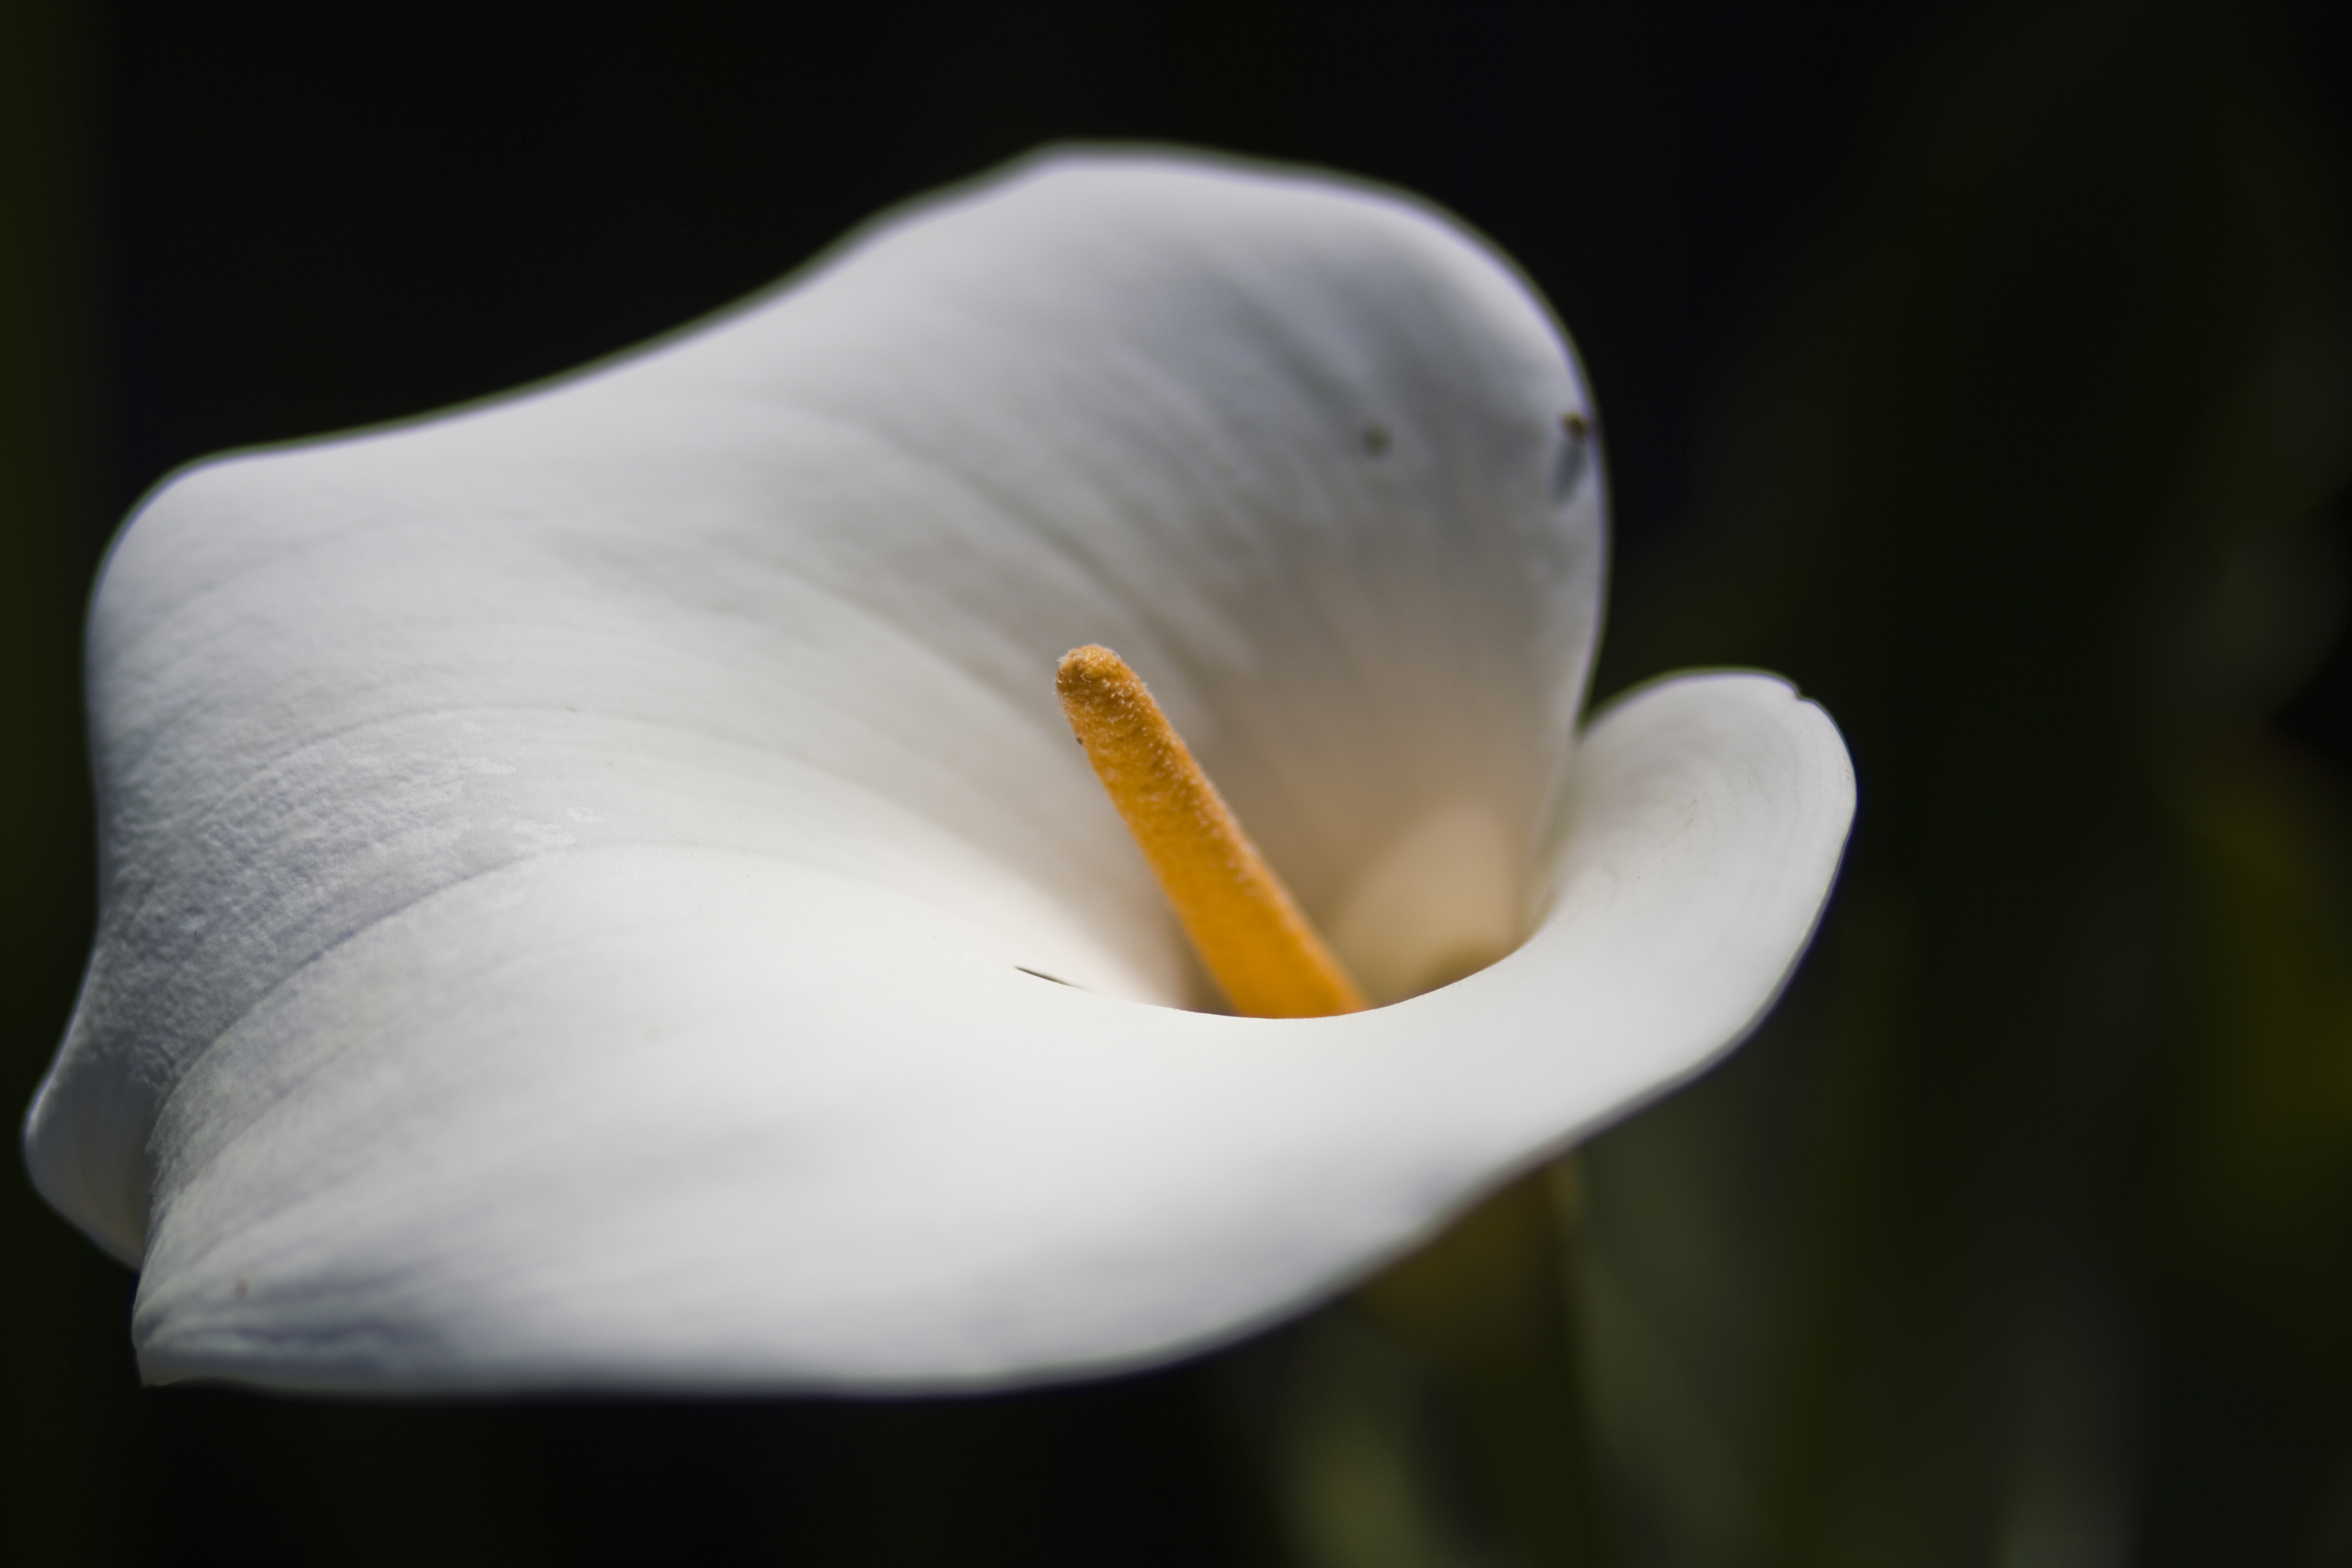 White flower closeup by thelilphotographer on deviantart white flower closeup by thelilphotographer white flower closeup by thelilphotographer mightylinksfo Gallery